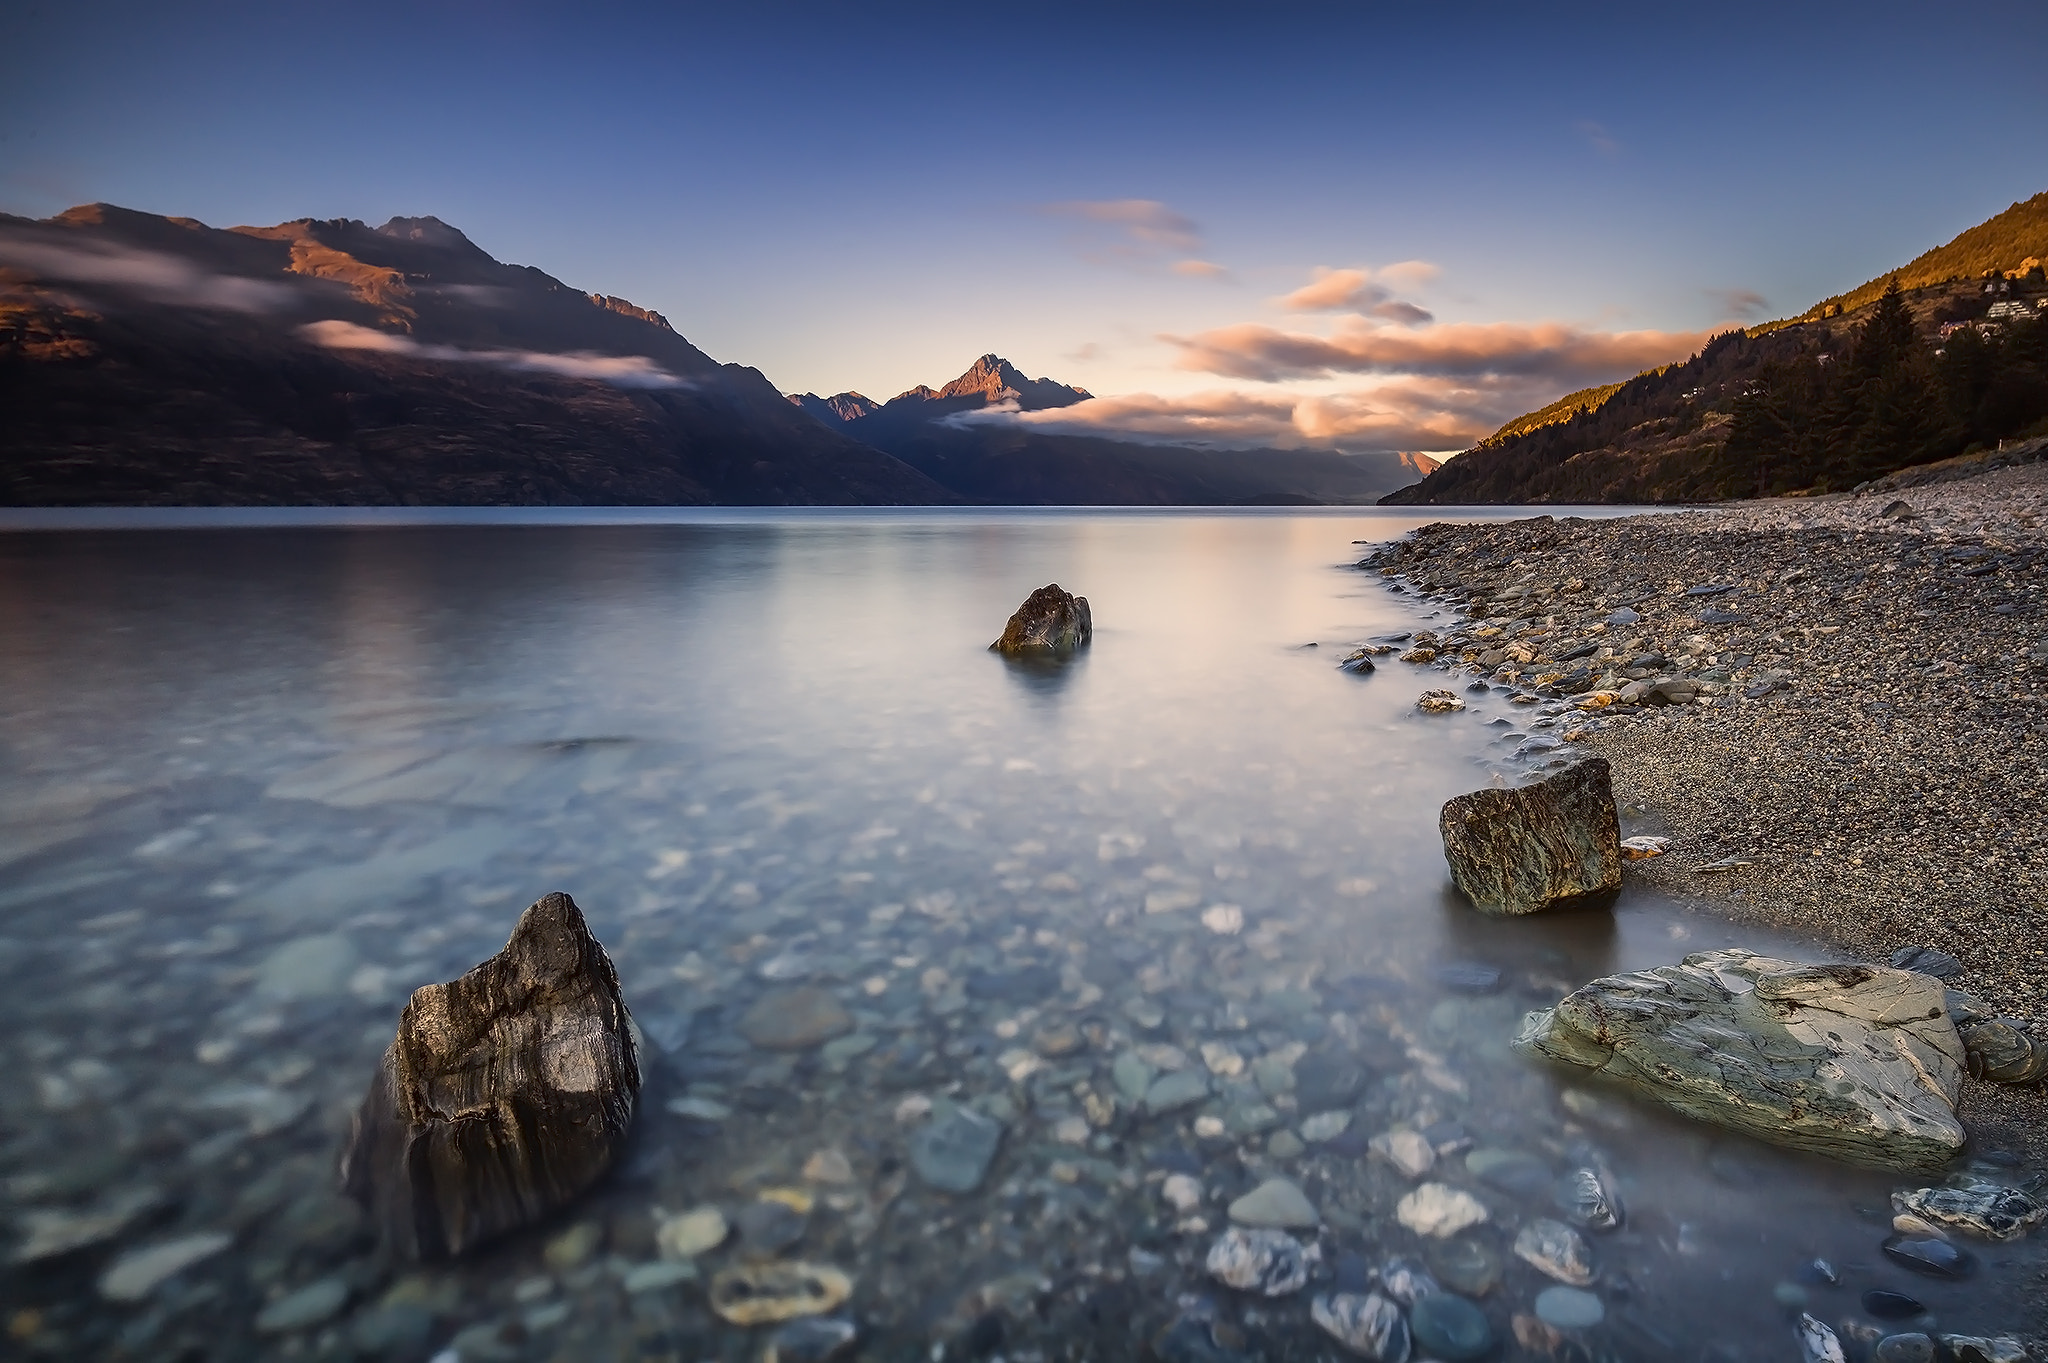 Photograph Lake Wakatipu by Byron Prukston on 500px